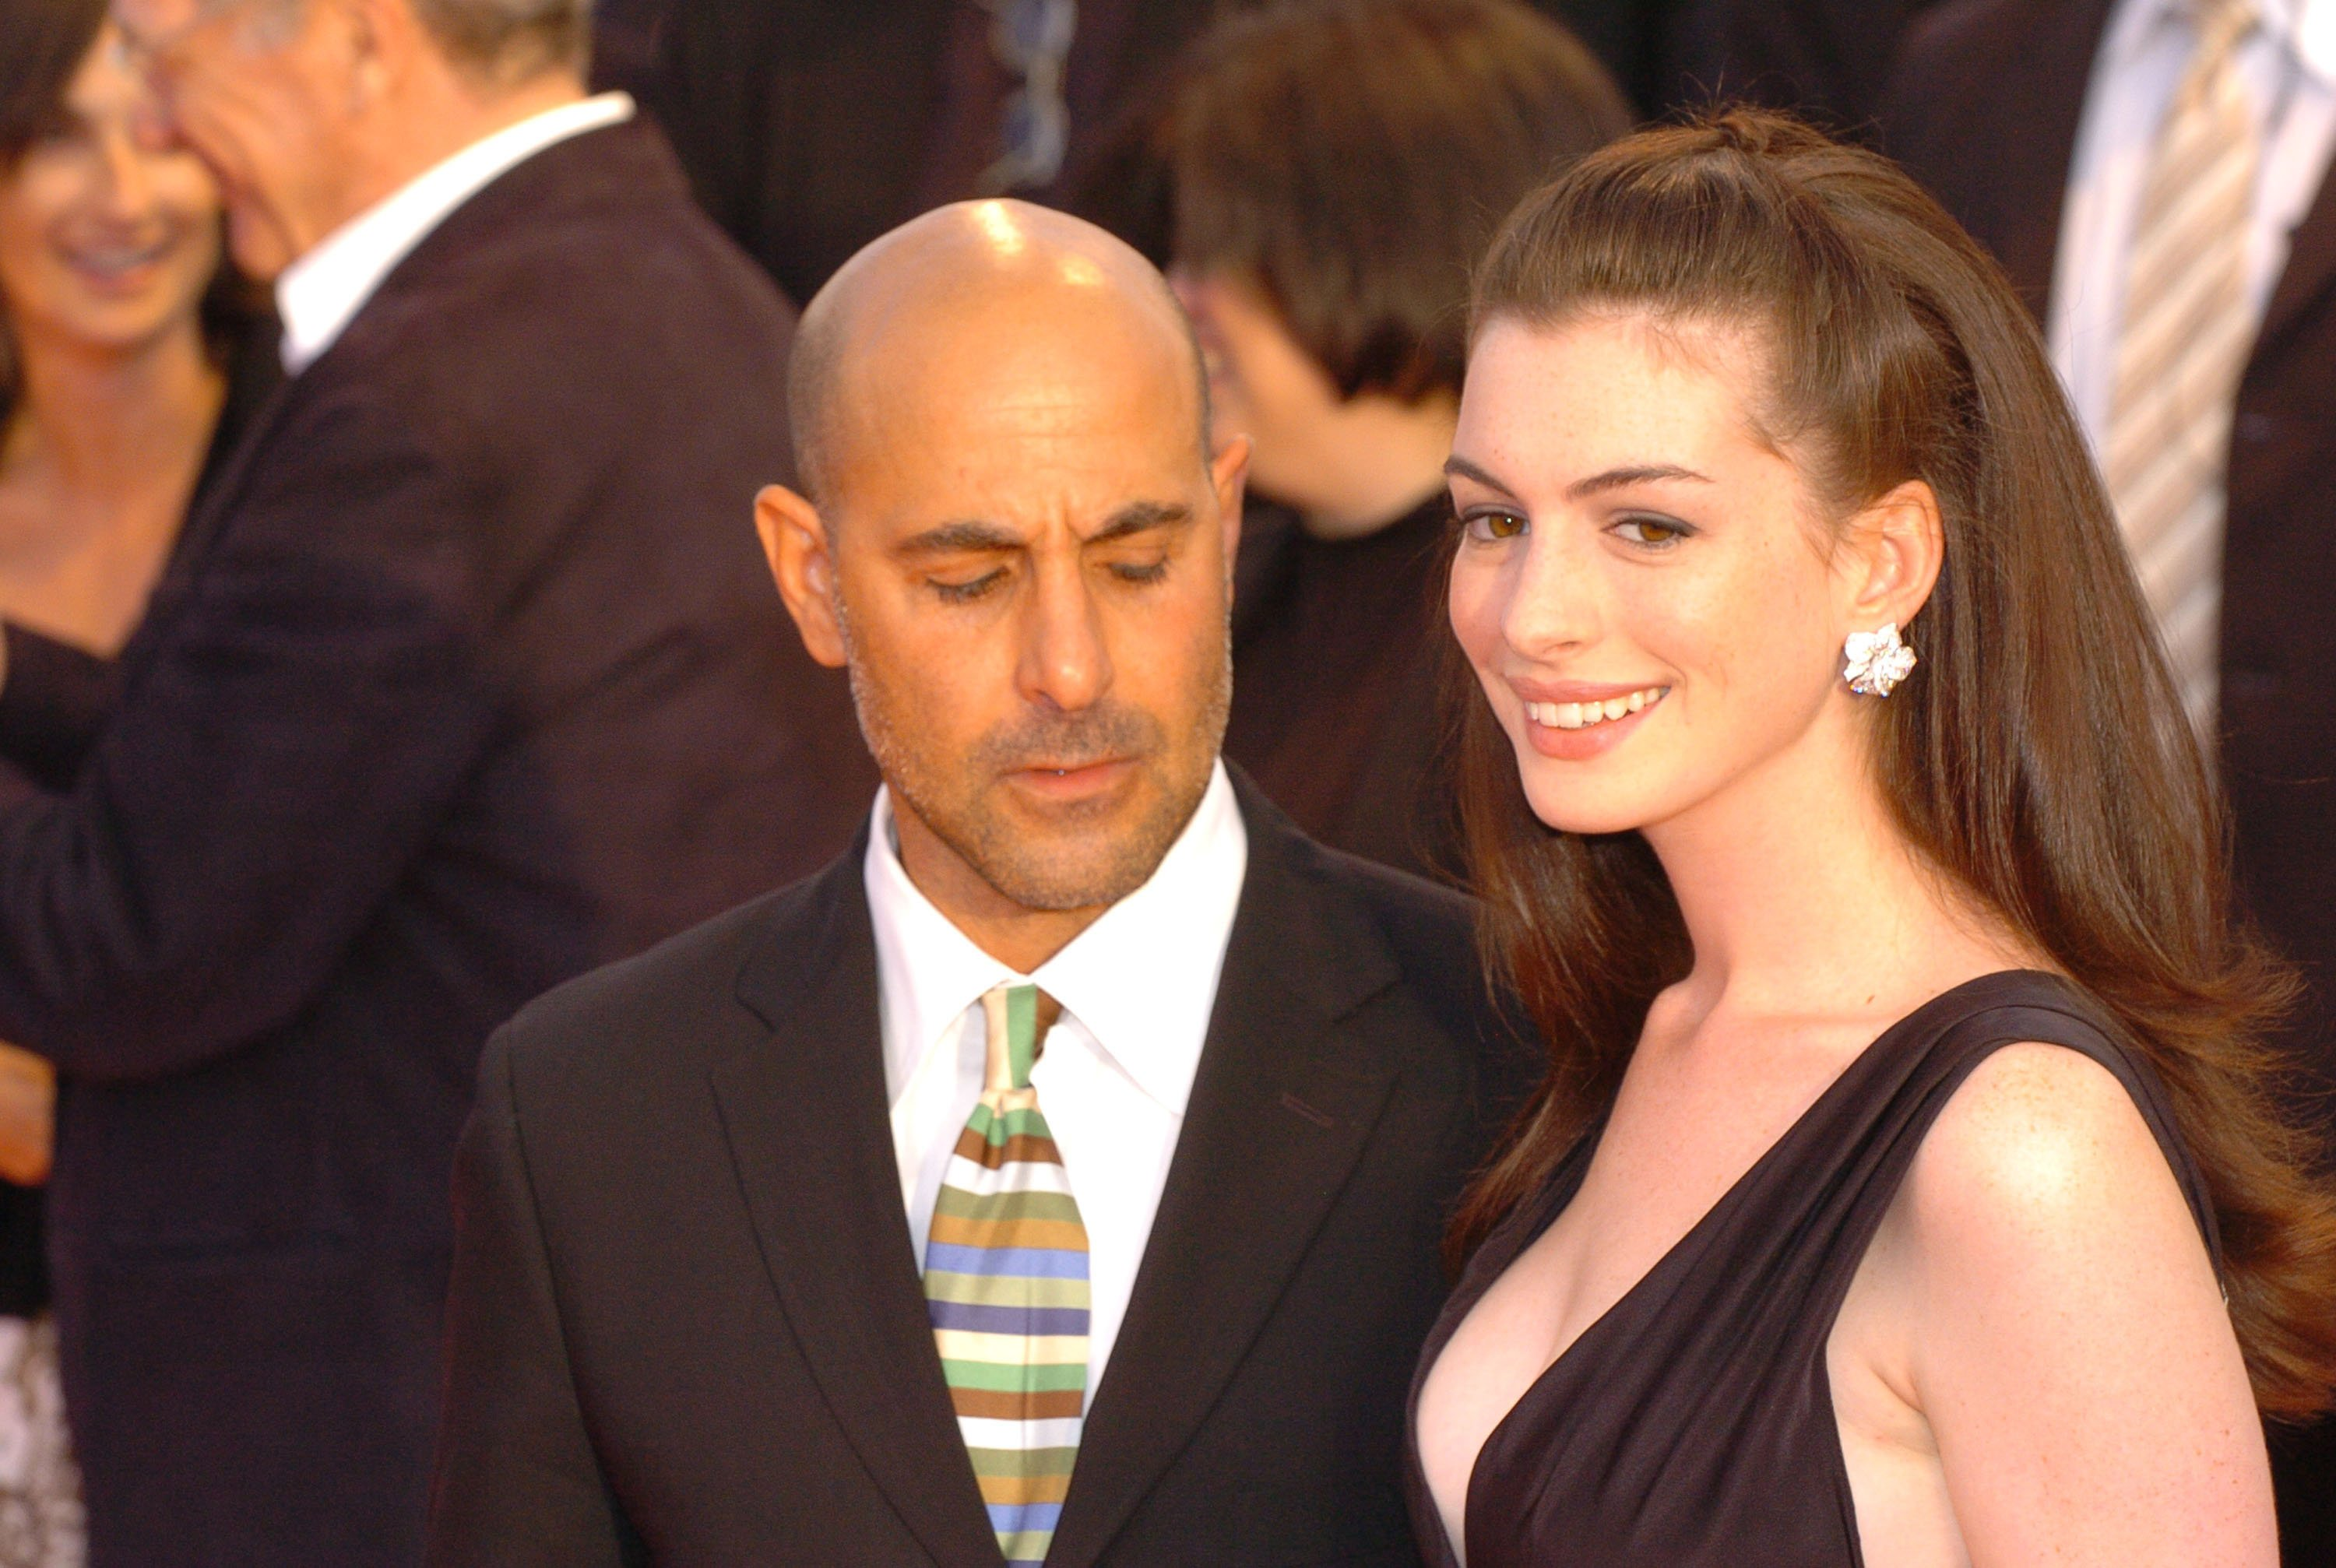 """Anne Hathaway and Stanley Tucci pictured at """"The Devil Wears Prada"""" premiere, 2006. 